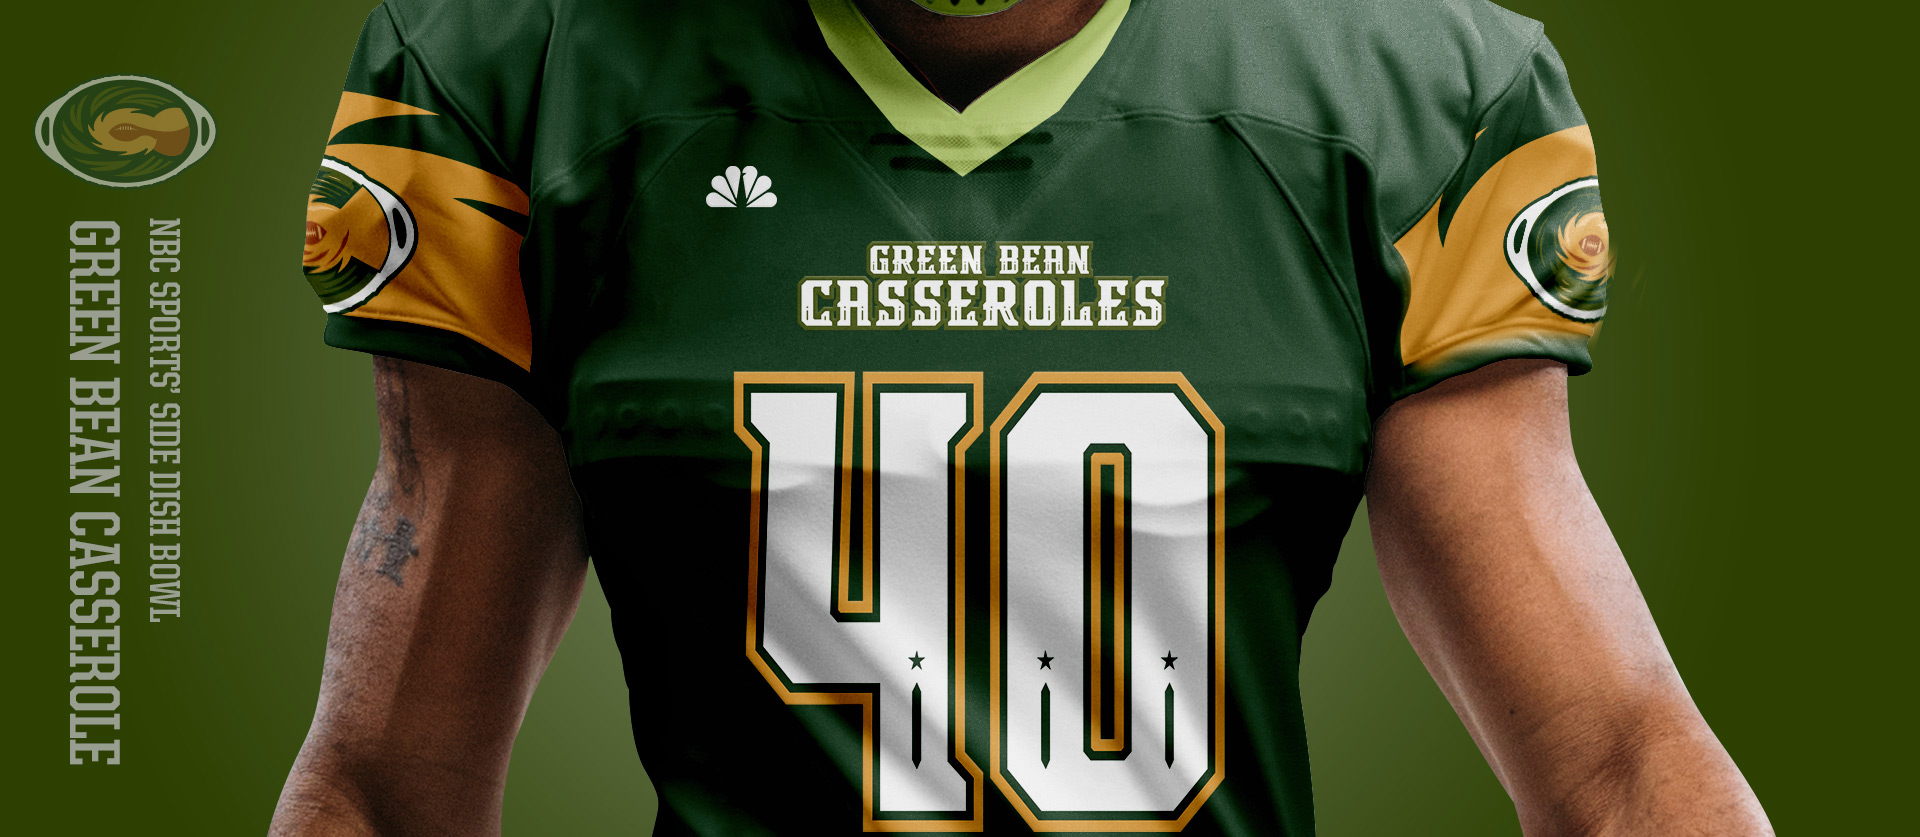 Green Bean Casseroles Front - Football Uniform Design for NBC Sports Thanksgiving Side Dish Bowl